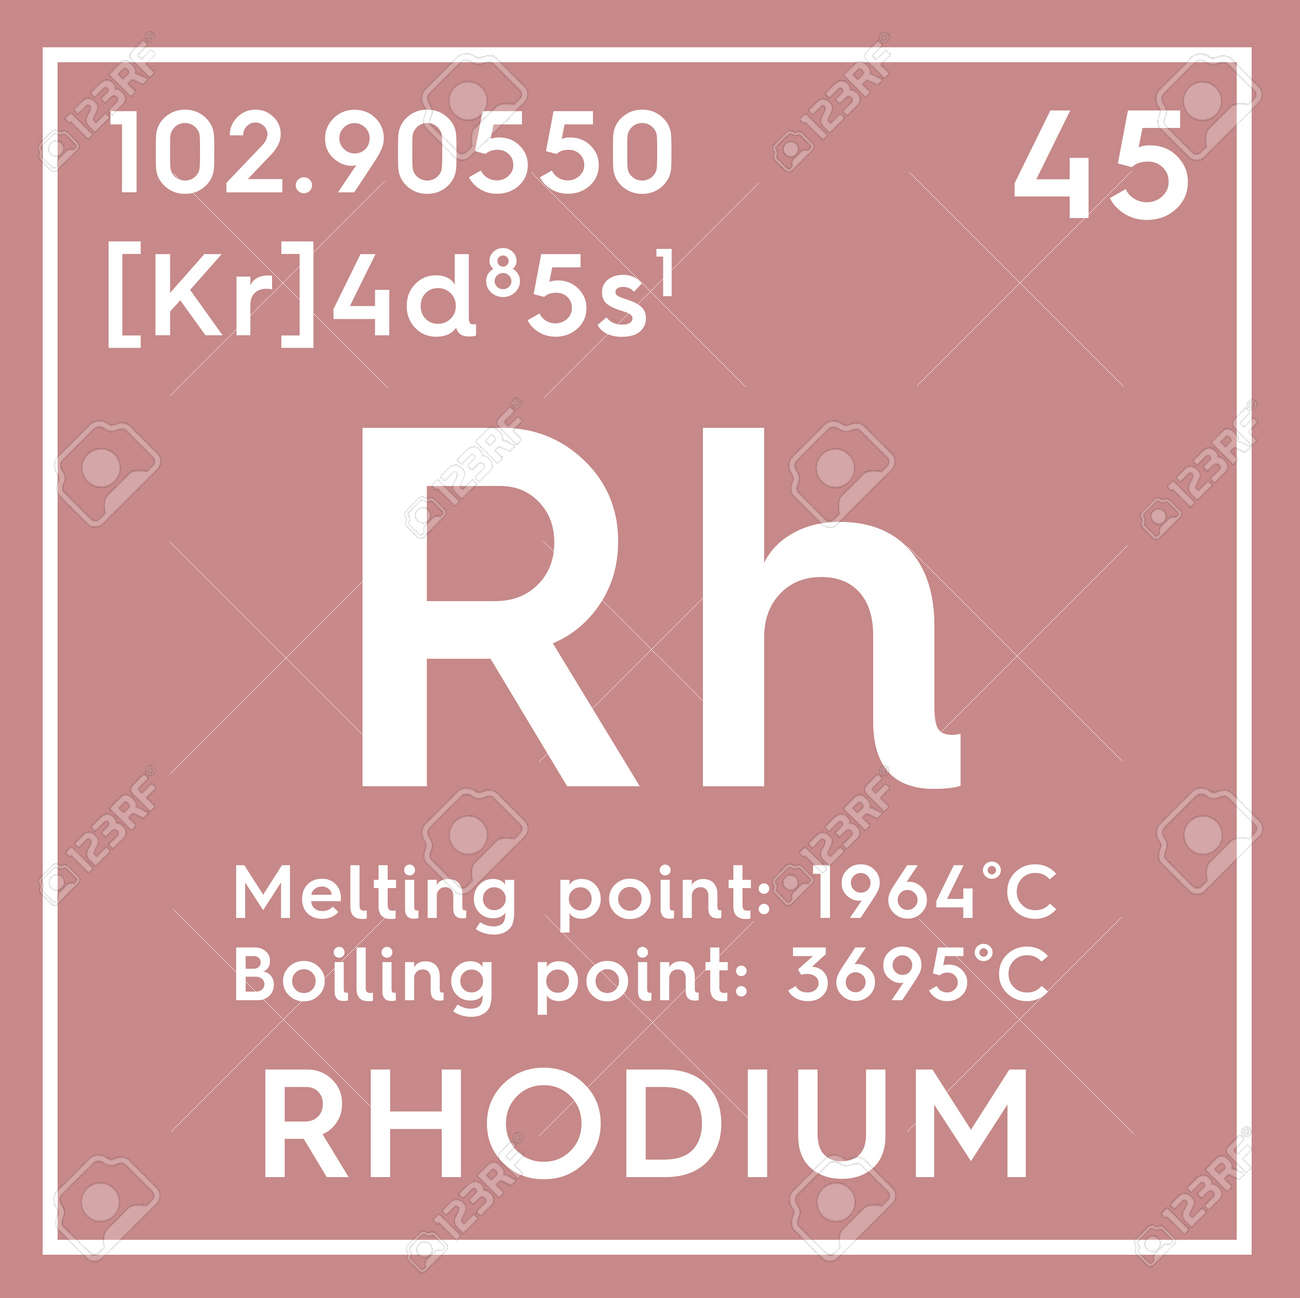 Rhodium transition metals chemical element of mendeleevs periodic transition metals chemical element of mendeleevs periodic table rhodium in a square urtaz Image collections